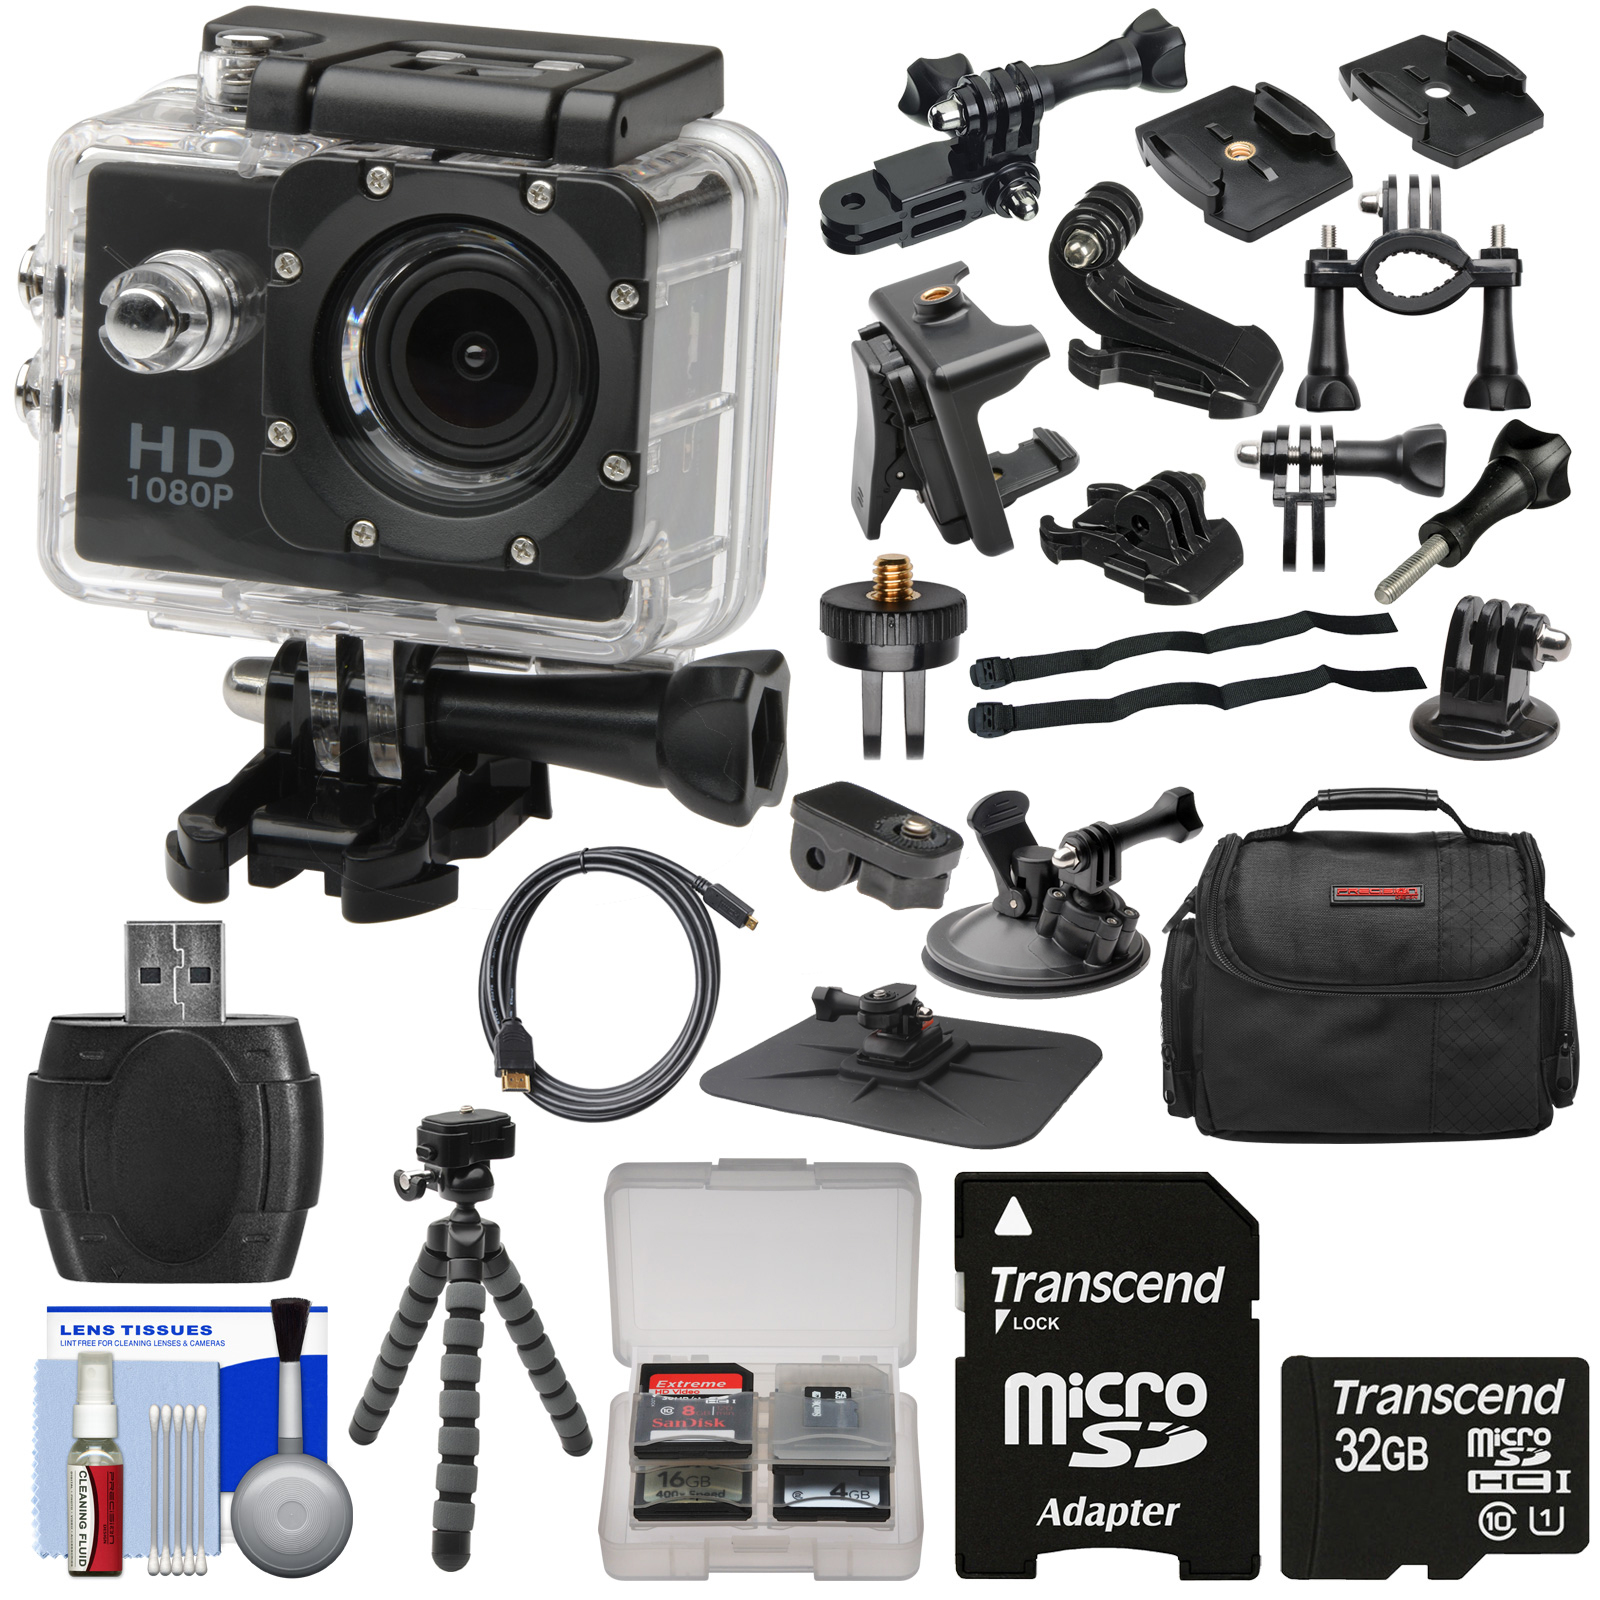 Zuma HD DVR 1080p Sports Video Recorder Action Camera Camcorder with LCD Screen & Action, Bike, Suction Cup & Dashboard Mounts + 32GB Card + Case + Flex Tripod + Kit